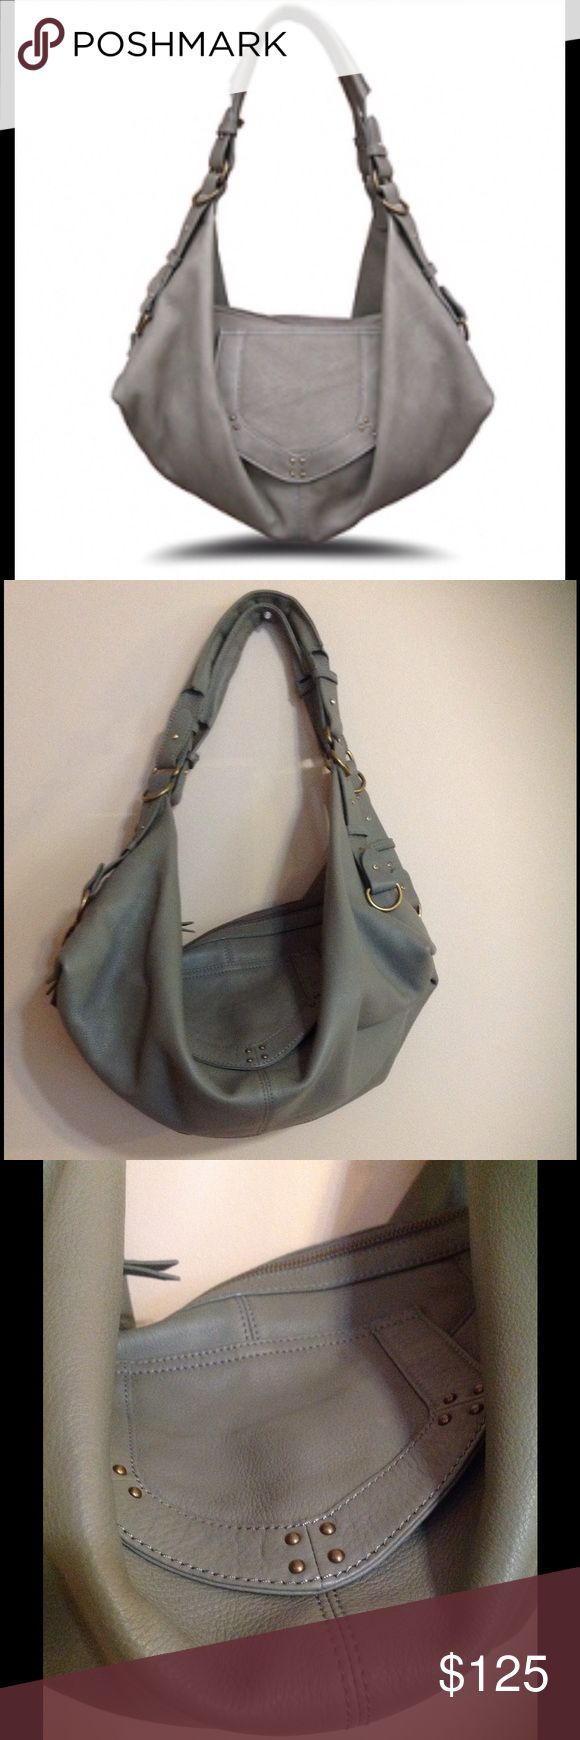 Hayden Harnett leather. Hobo bag Gorgeous color and high quality leather. Great condition other than the slight marks shown in pic 4. Hayden Harnett NY Bags Hobos